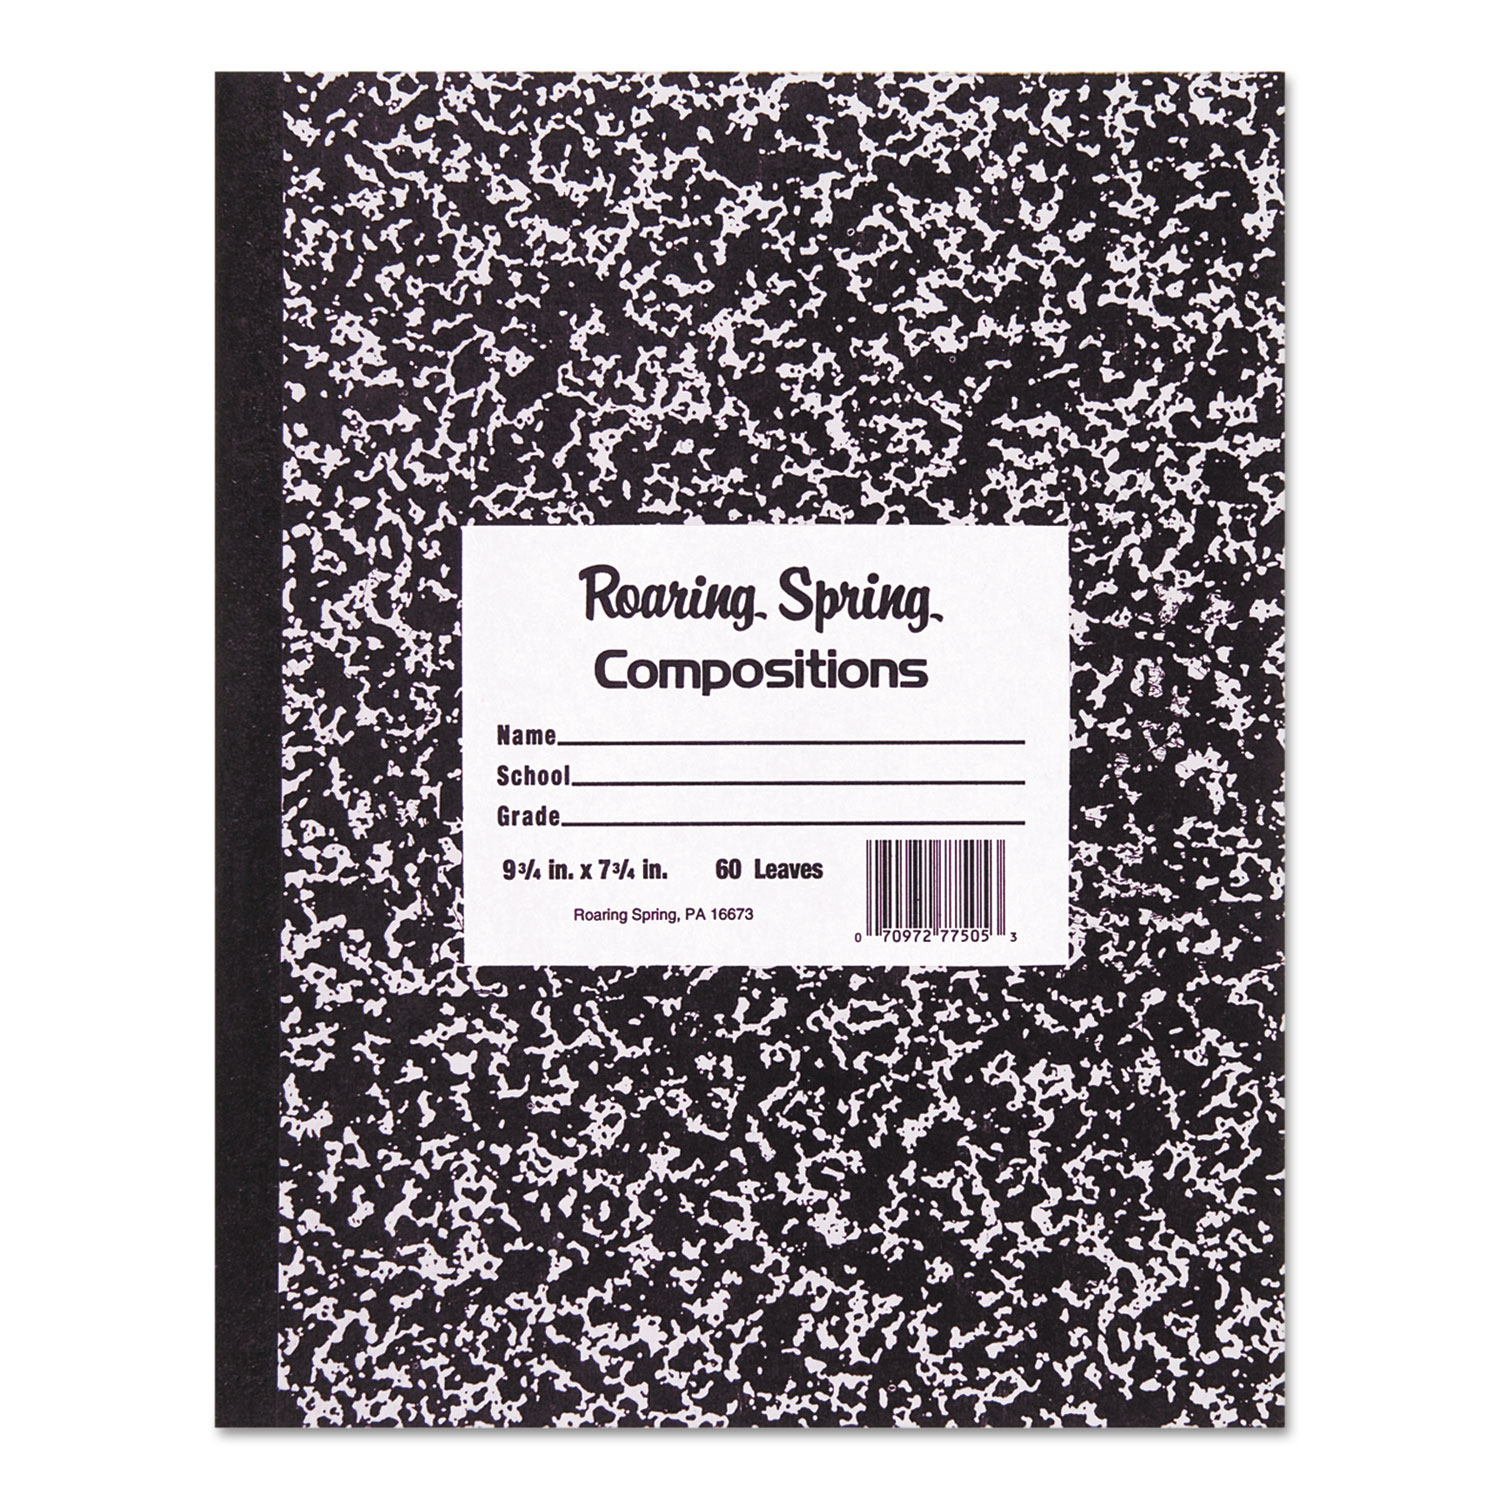 Marble Cover Composition Book, Wide/Legal Rule, Black Cover, 8.5 x 7, 36 Sheets